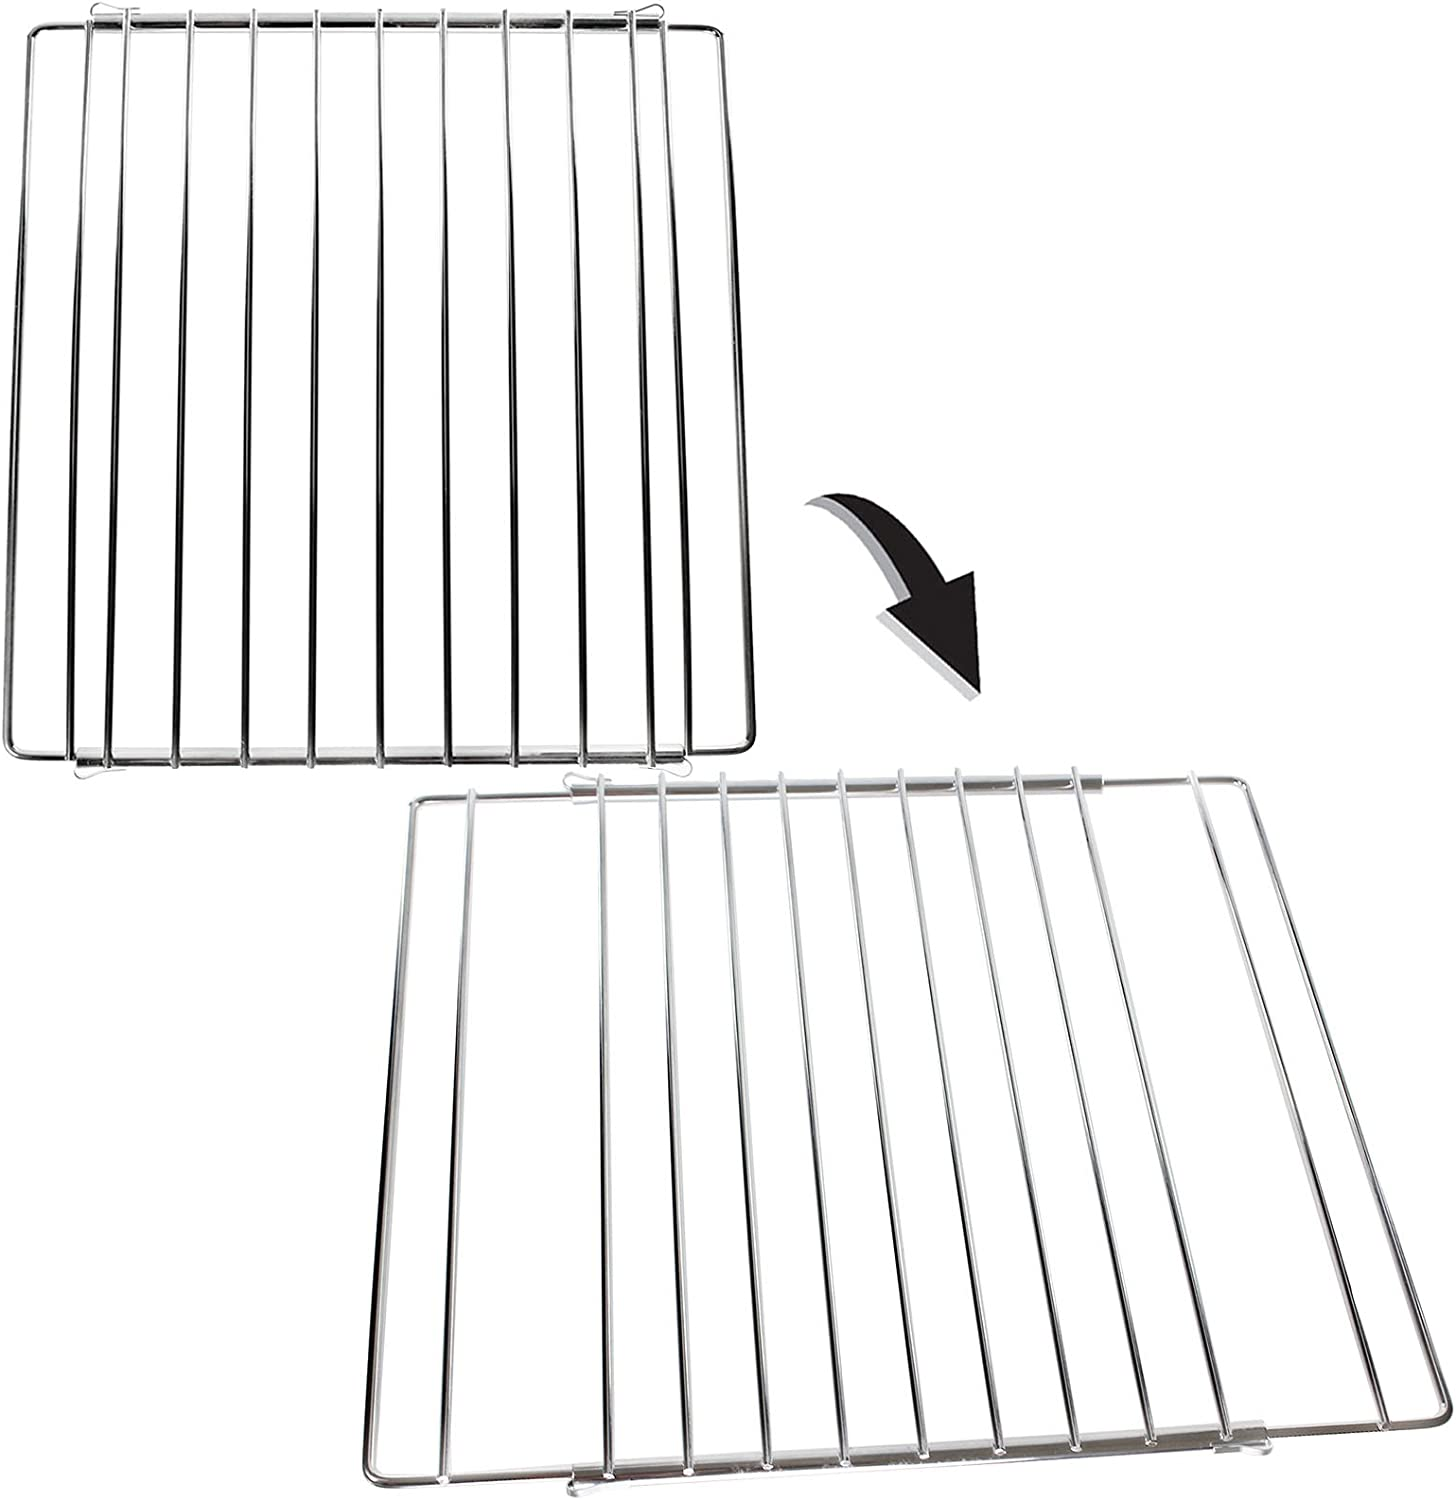 SPARES2GO Universal Adjustable Extendable Small Oven Shelf for Barbecue Grill Pack of 2